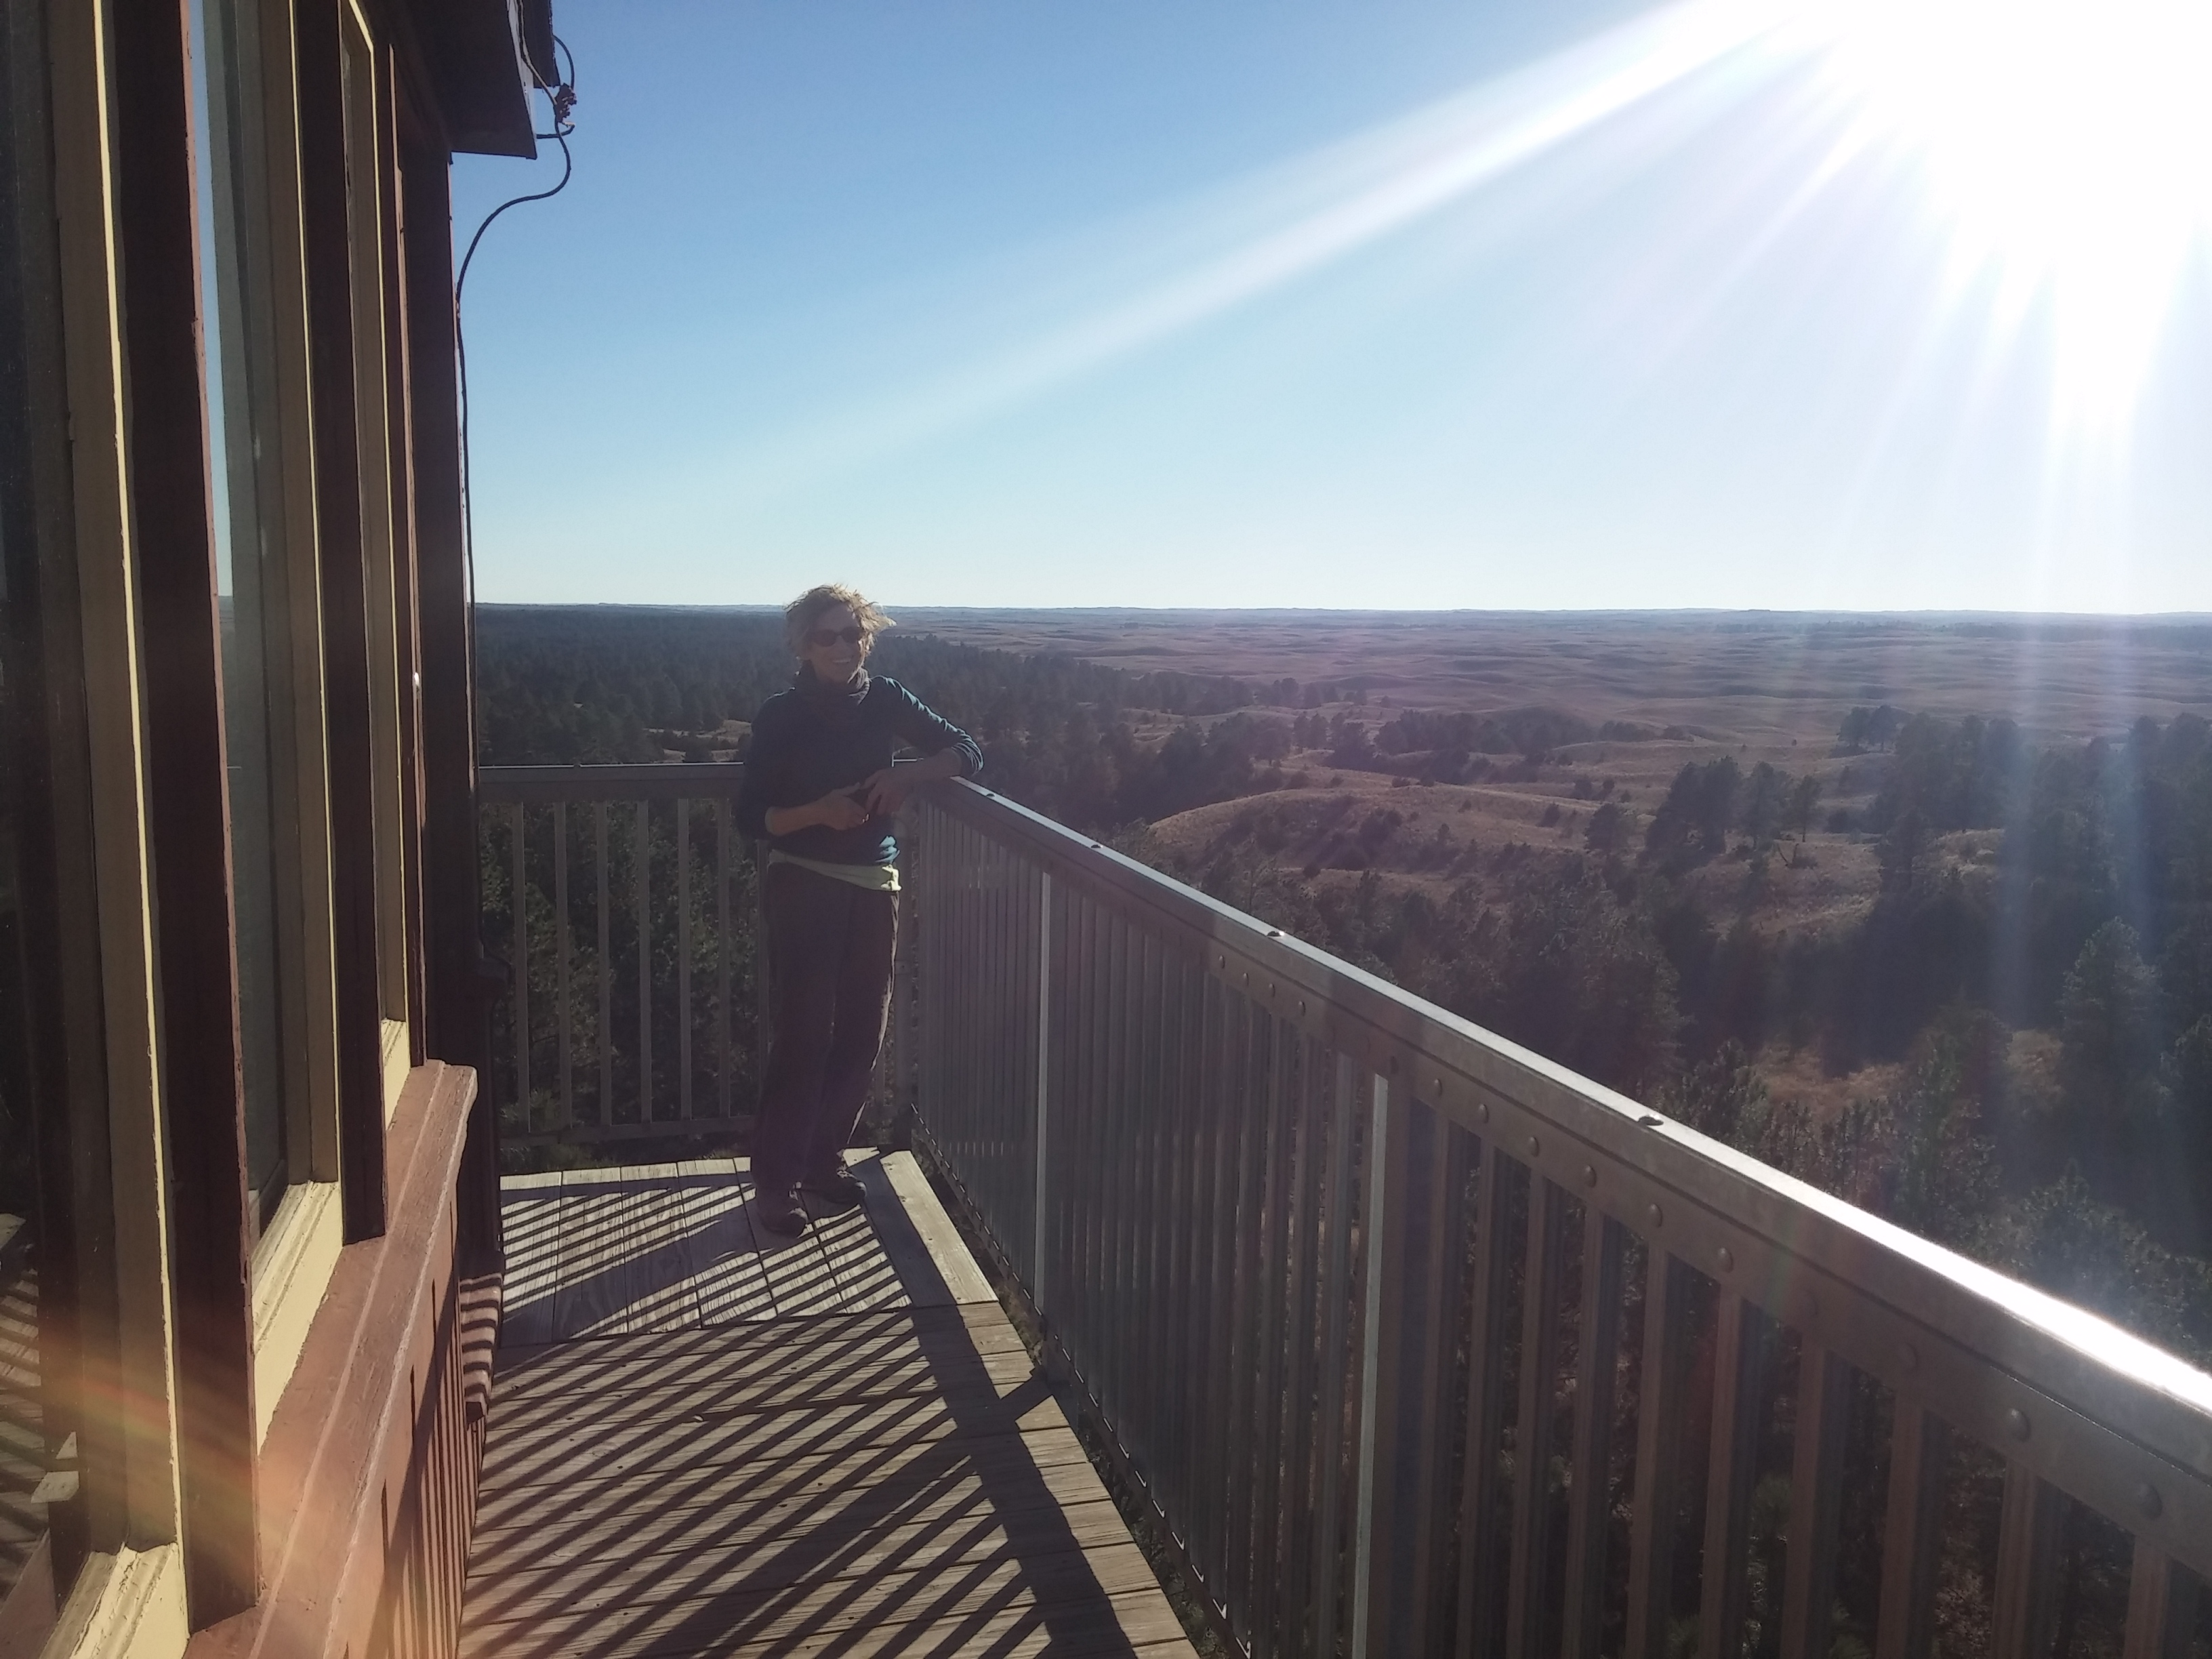 A woman on the platform of the Scott Lookout Tower.